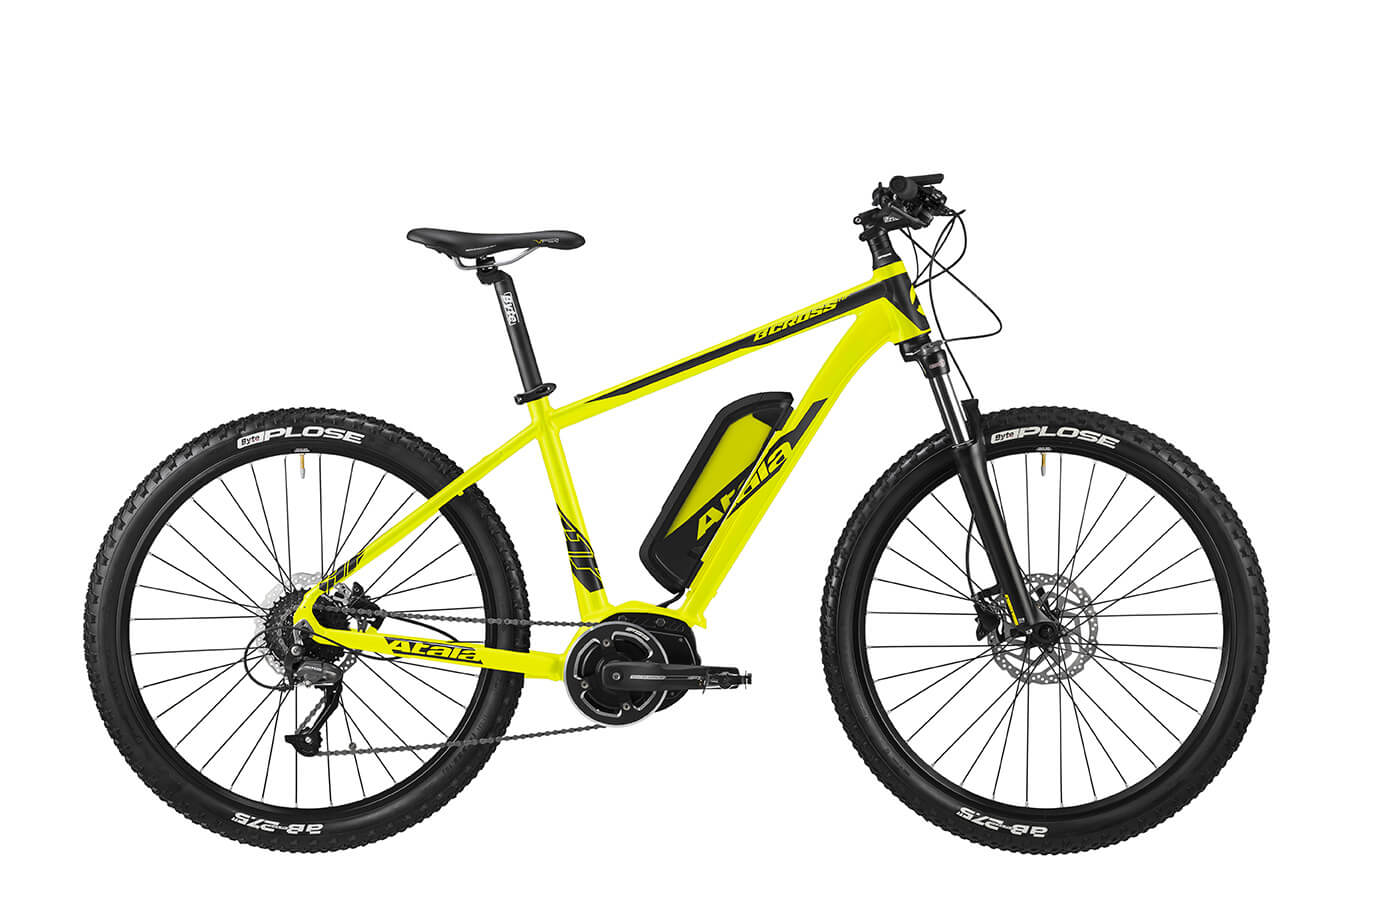 Atala B-CROSS AM80 500 1